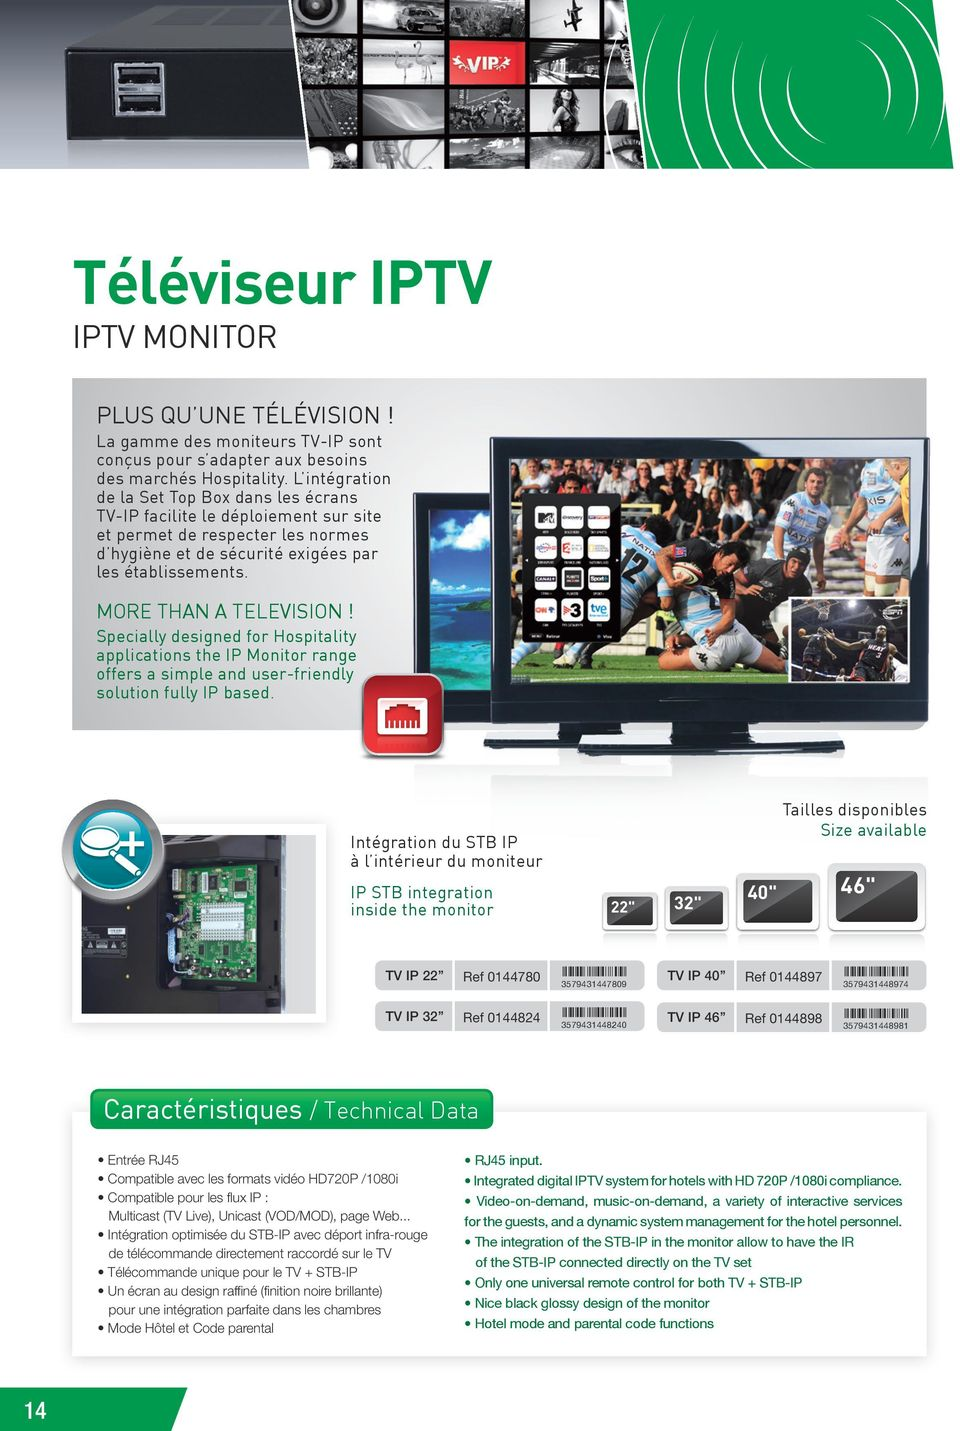 MORE THAN A TELEVISION! Specially designed for Hospitality applications the IP Monitor range offers a simple and user-friendly solution fully IP based.